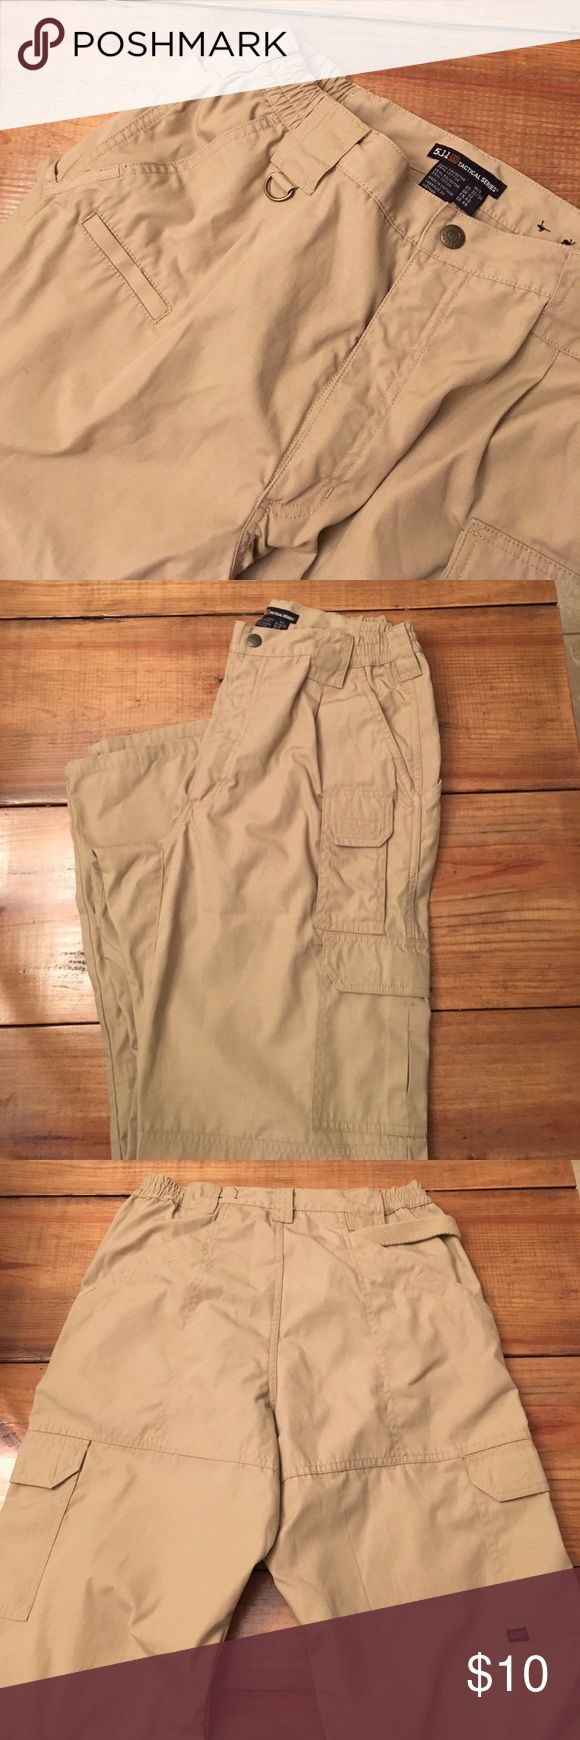 511 tactical pants Worn once 511 tactical pants light tan in color. Size 32w 34L Pants Cargo